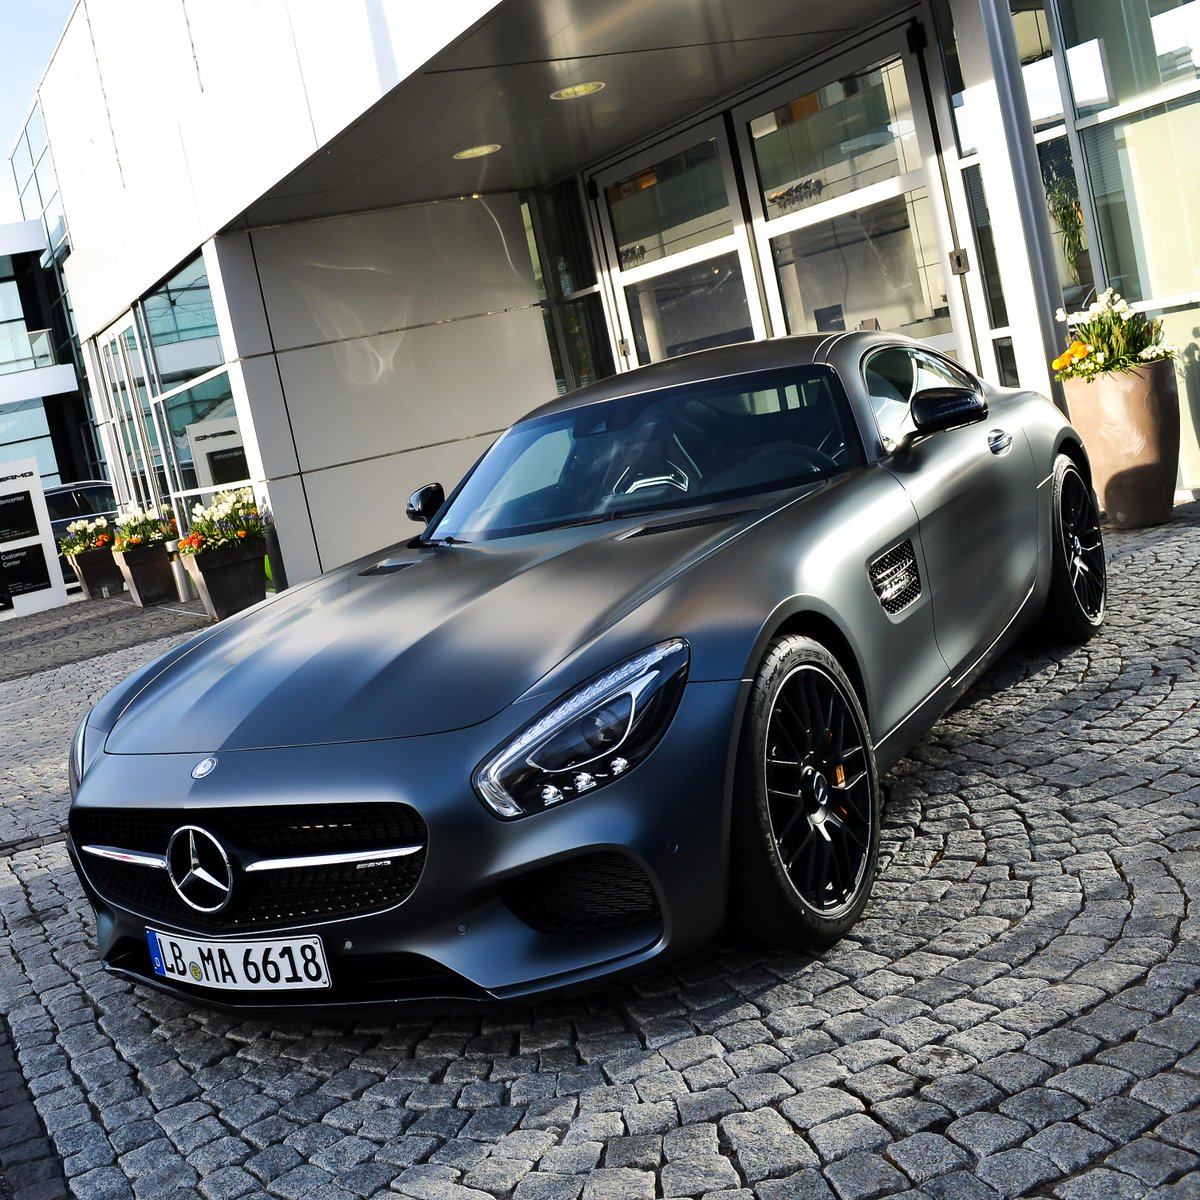 Mercedes amg on twitter the best of instagram mercedes for Mercedes benz instagram